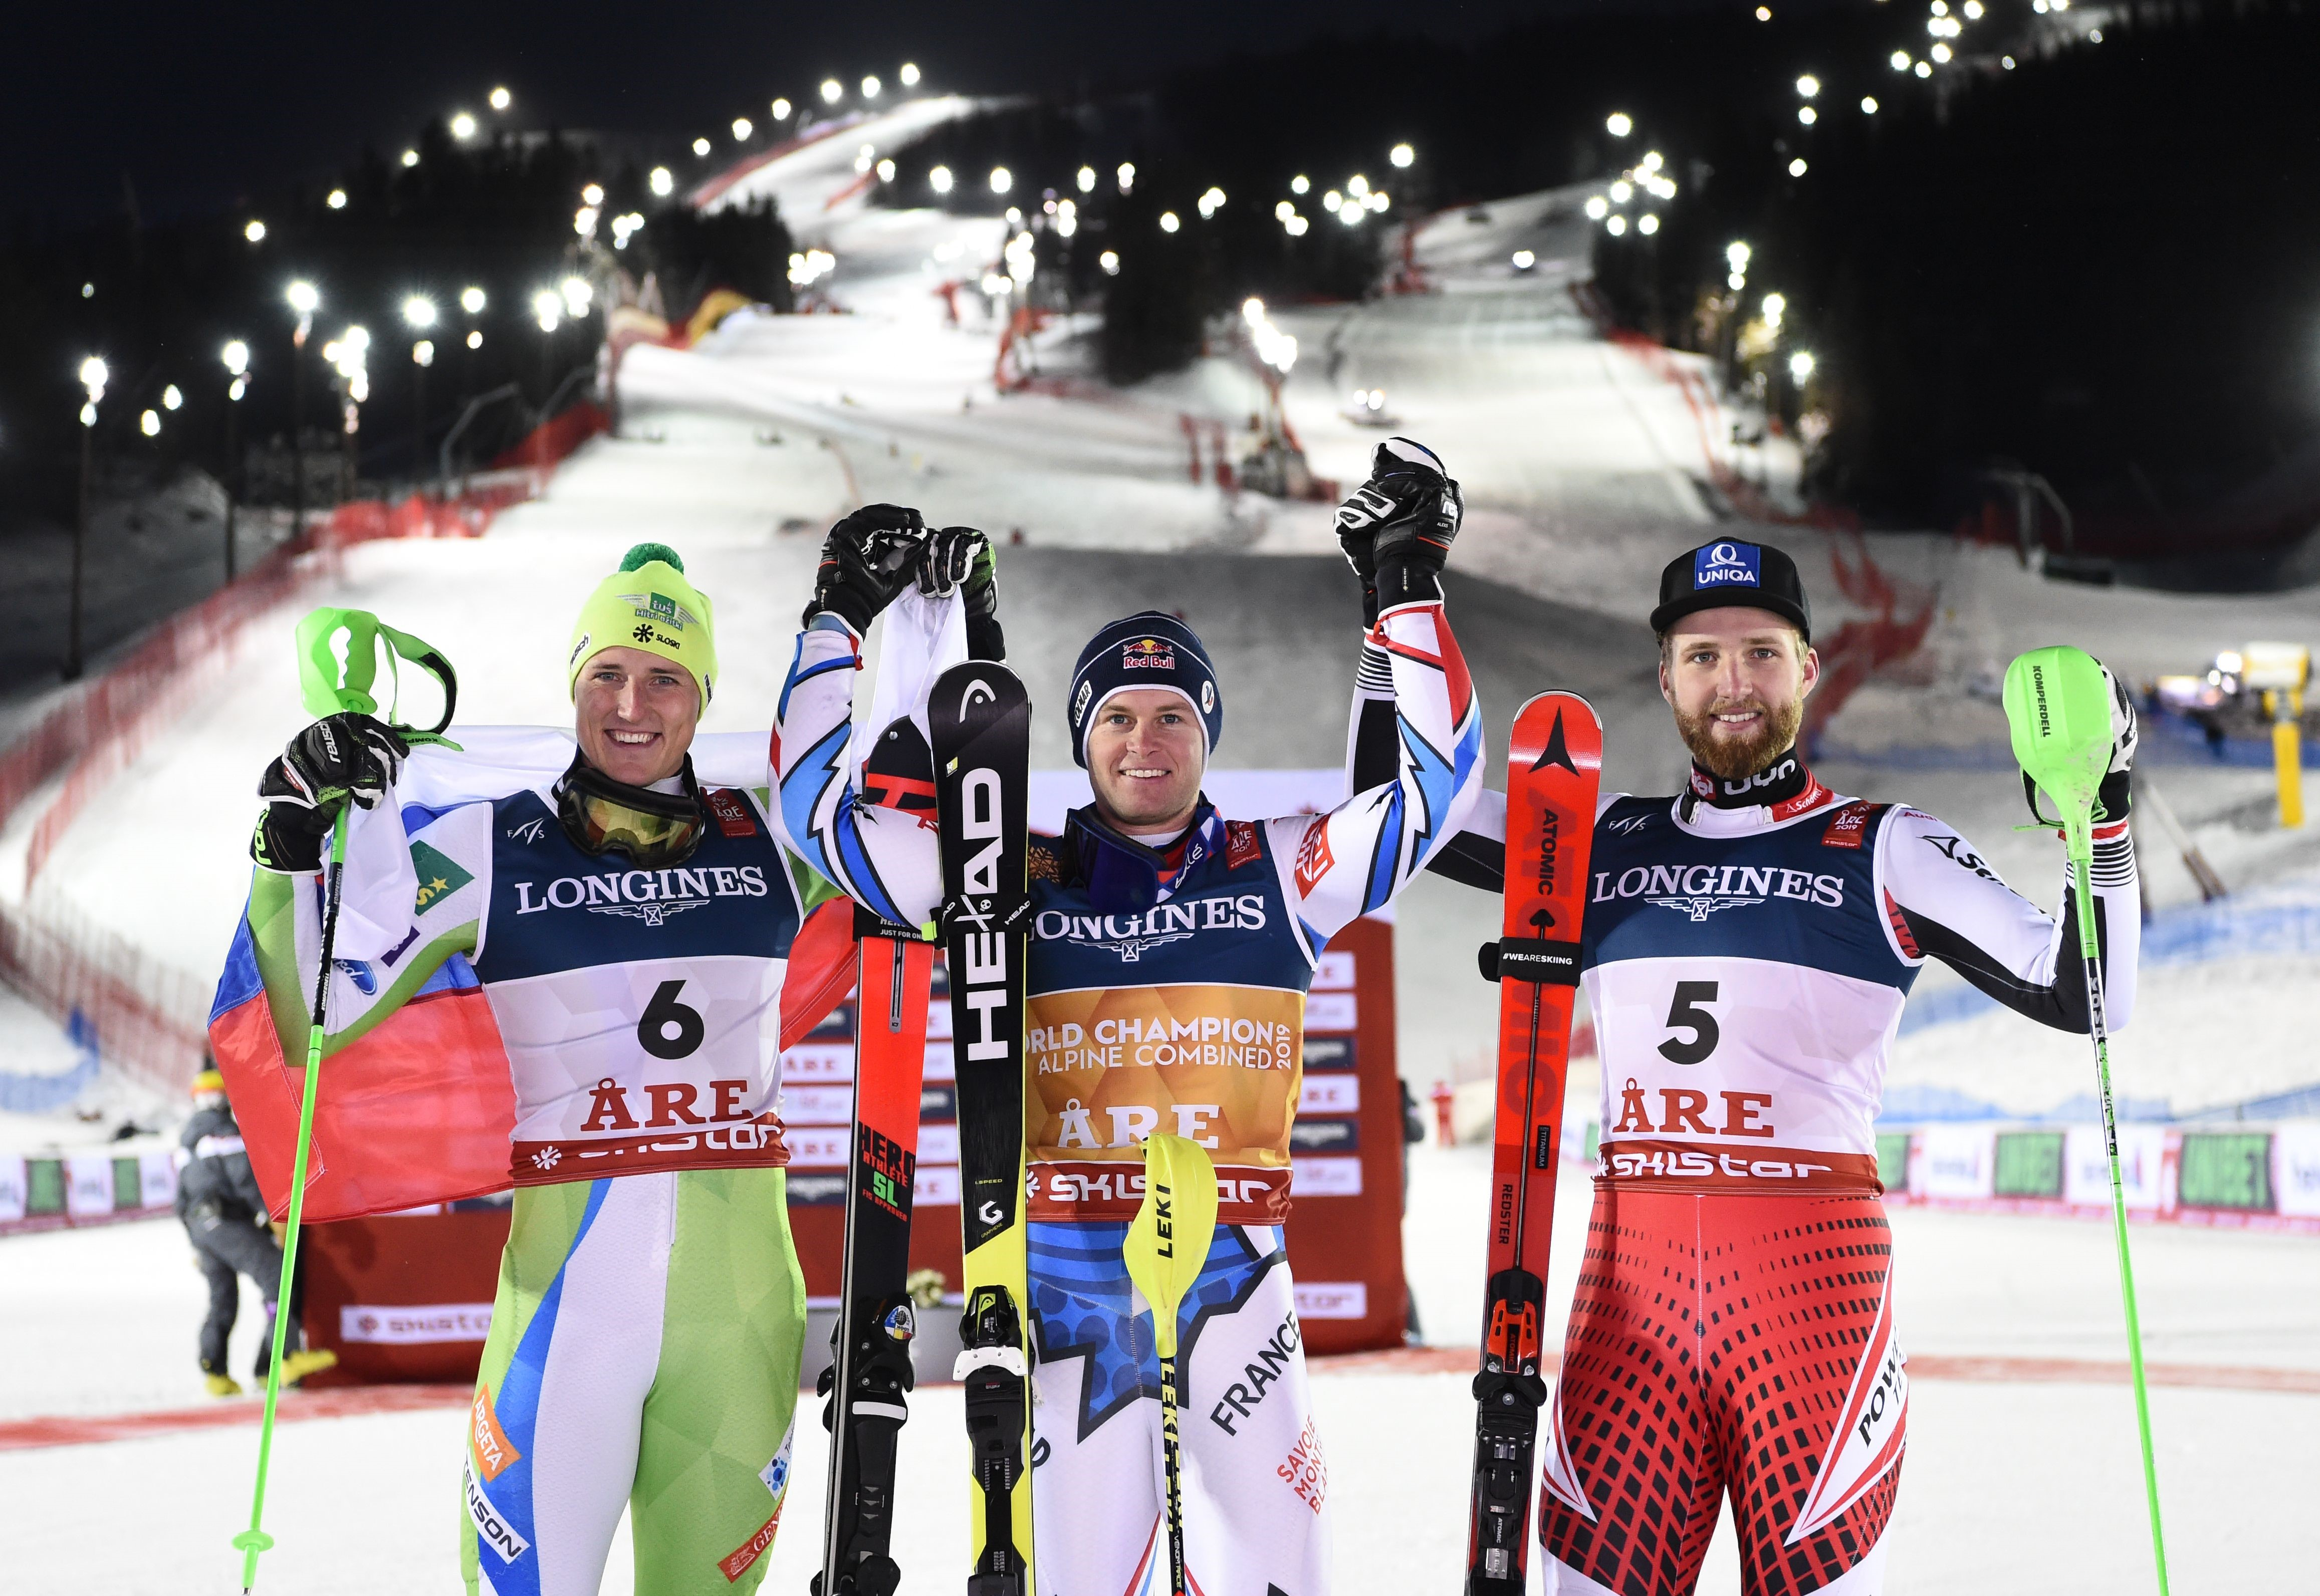 Alexis Pinturault of France wins the gold medal, Stefan Hadalin of Slovenia wins the silver medal, Marco Schwarz of Austria wins the bronze medal during the FIS World Ski Championships Men's Alpine Combined on February 11, 2019 in Are Sweden.